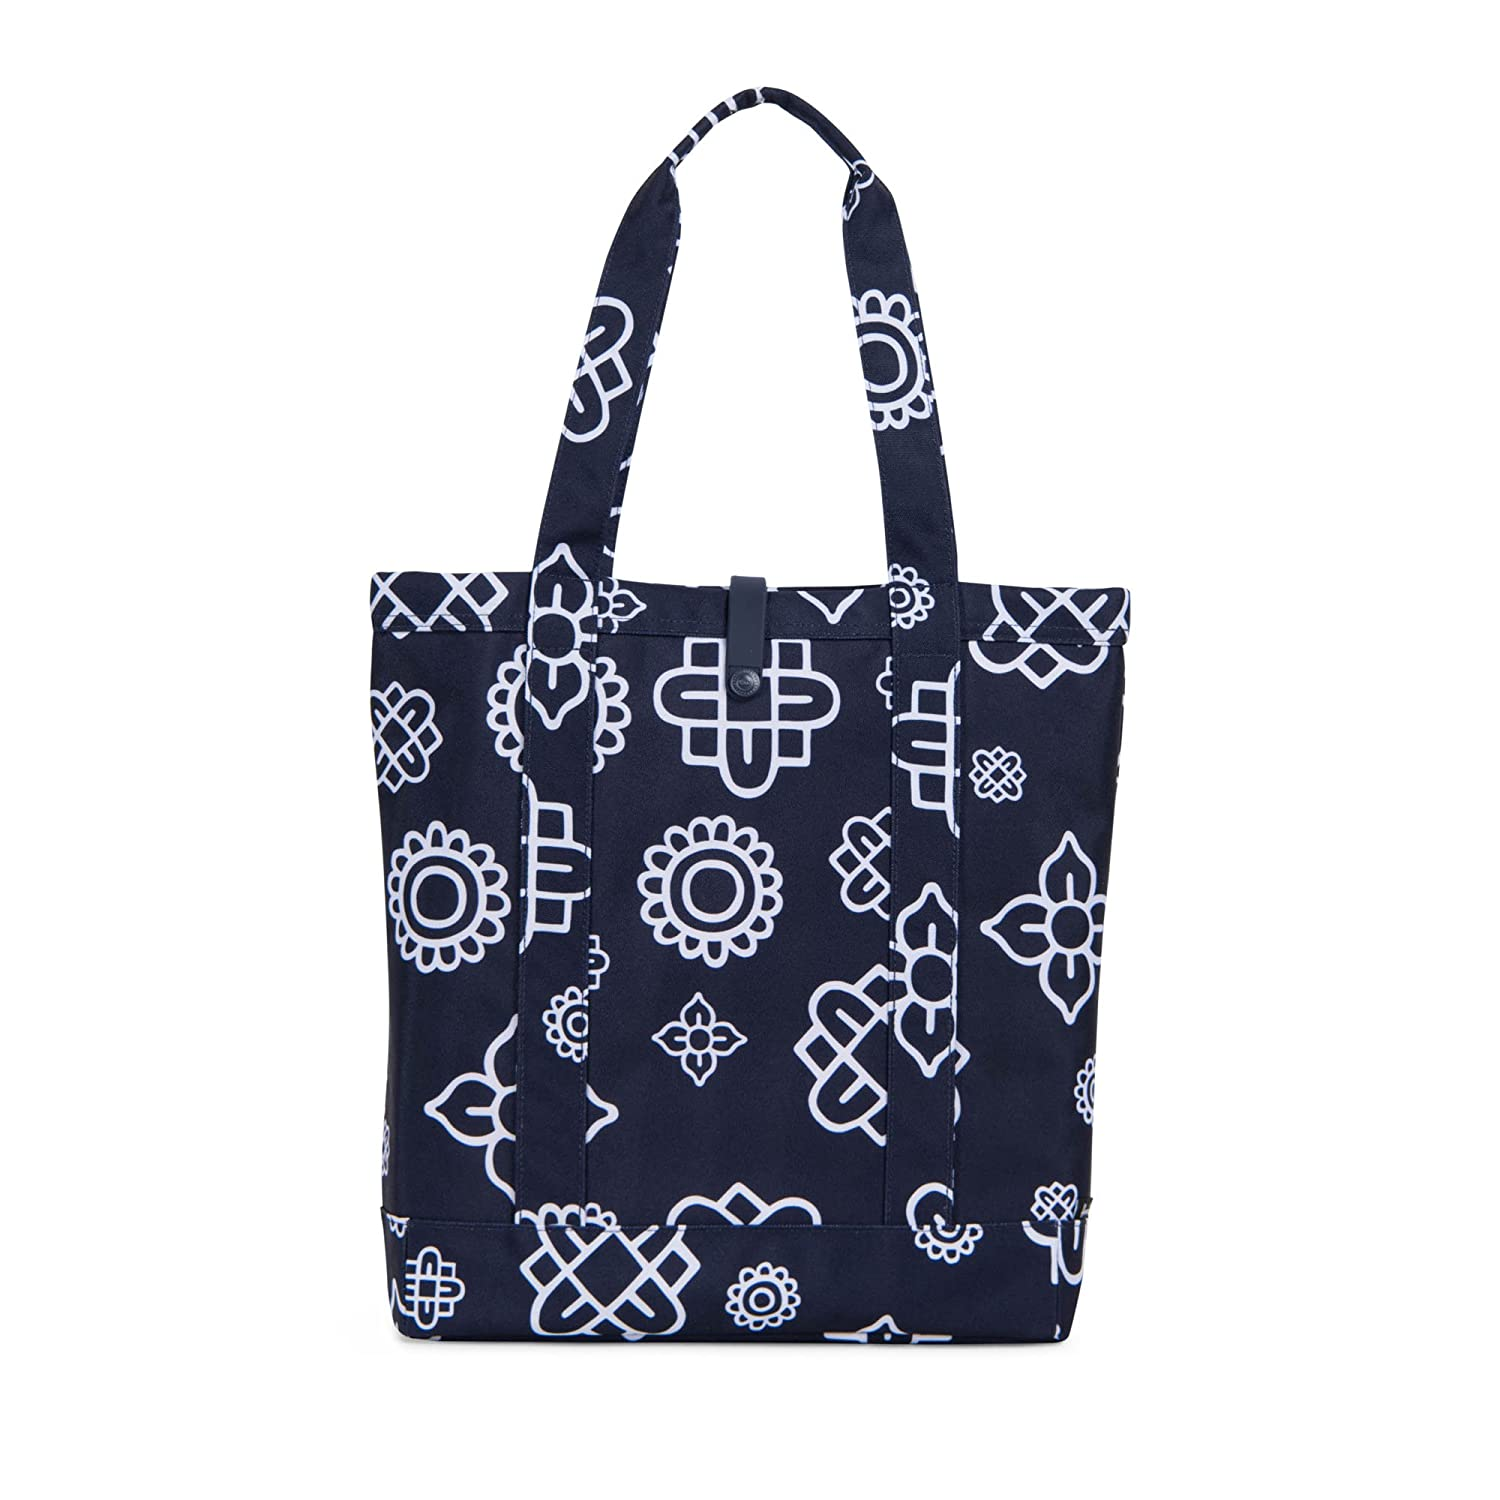 9a7b78569b04 Herschel Supply Co. Market Tote Travel Totes